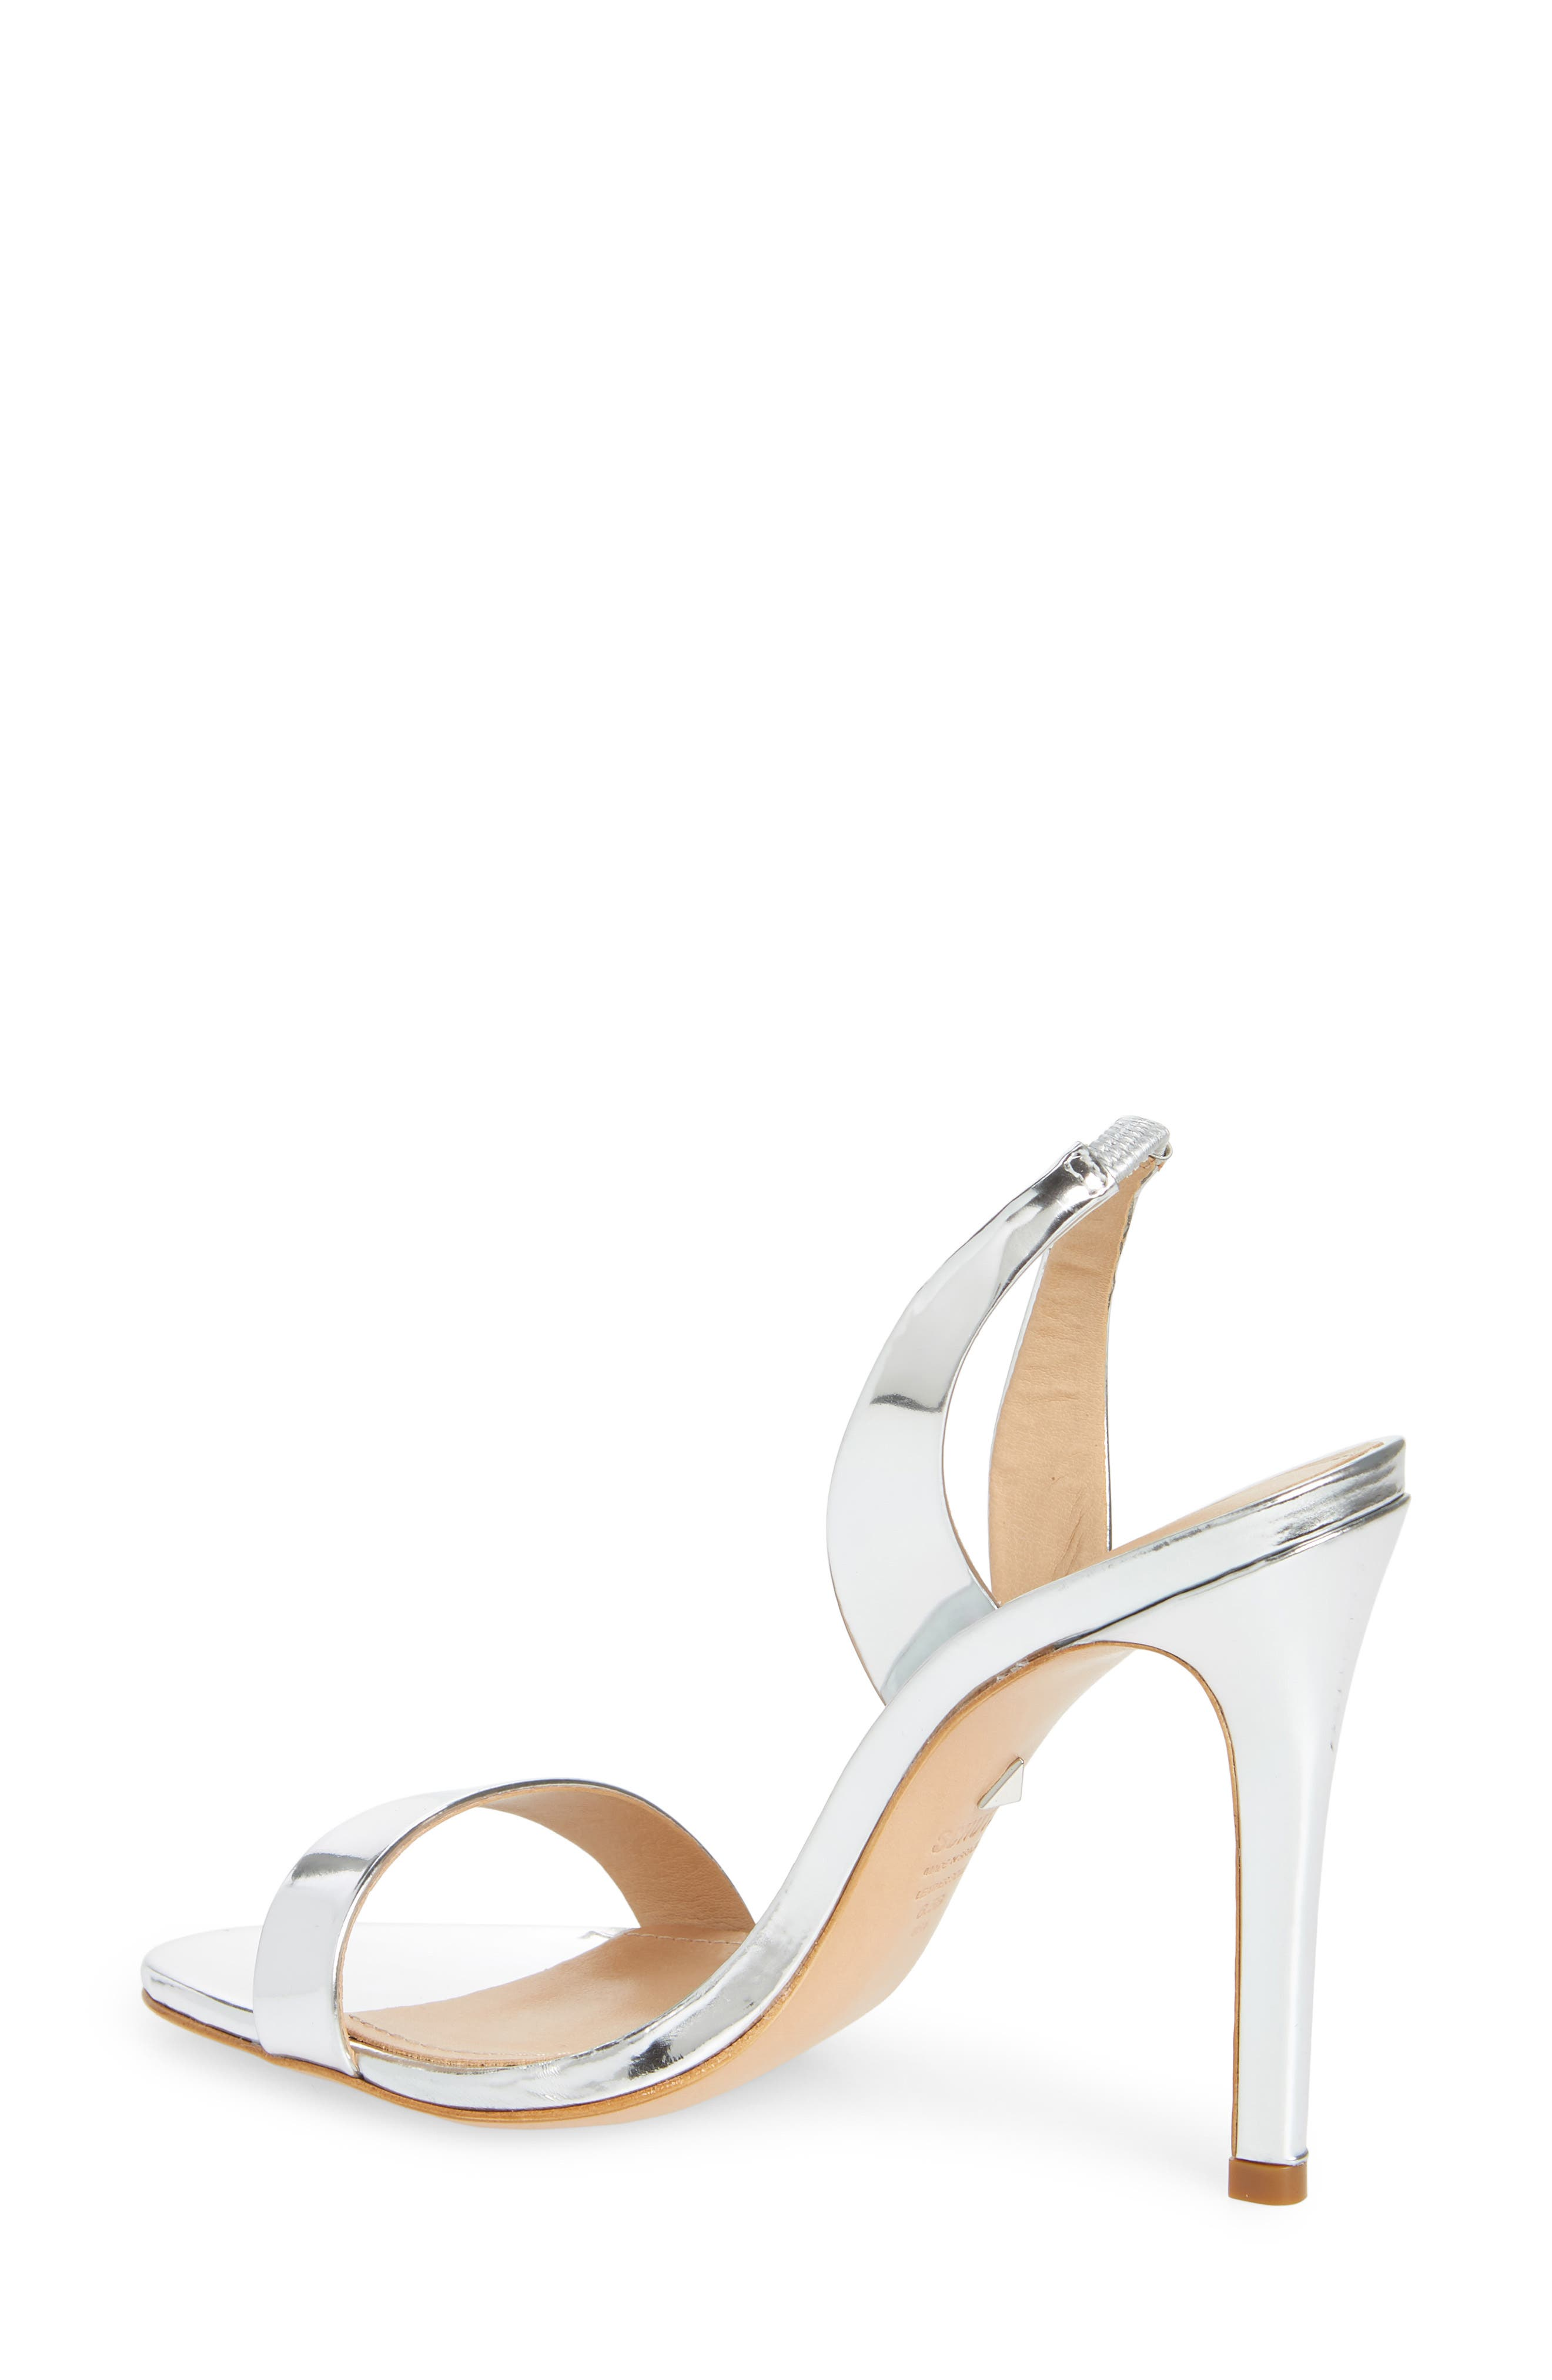 Luriane Sandal,                             Alternate thumbnail 2, color,                             SILVER PATENT LEATHER